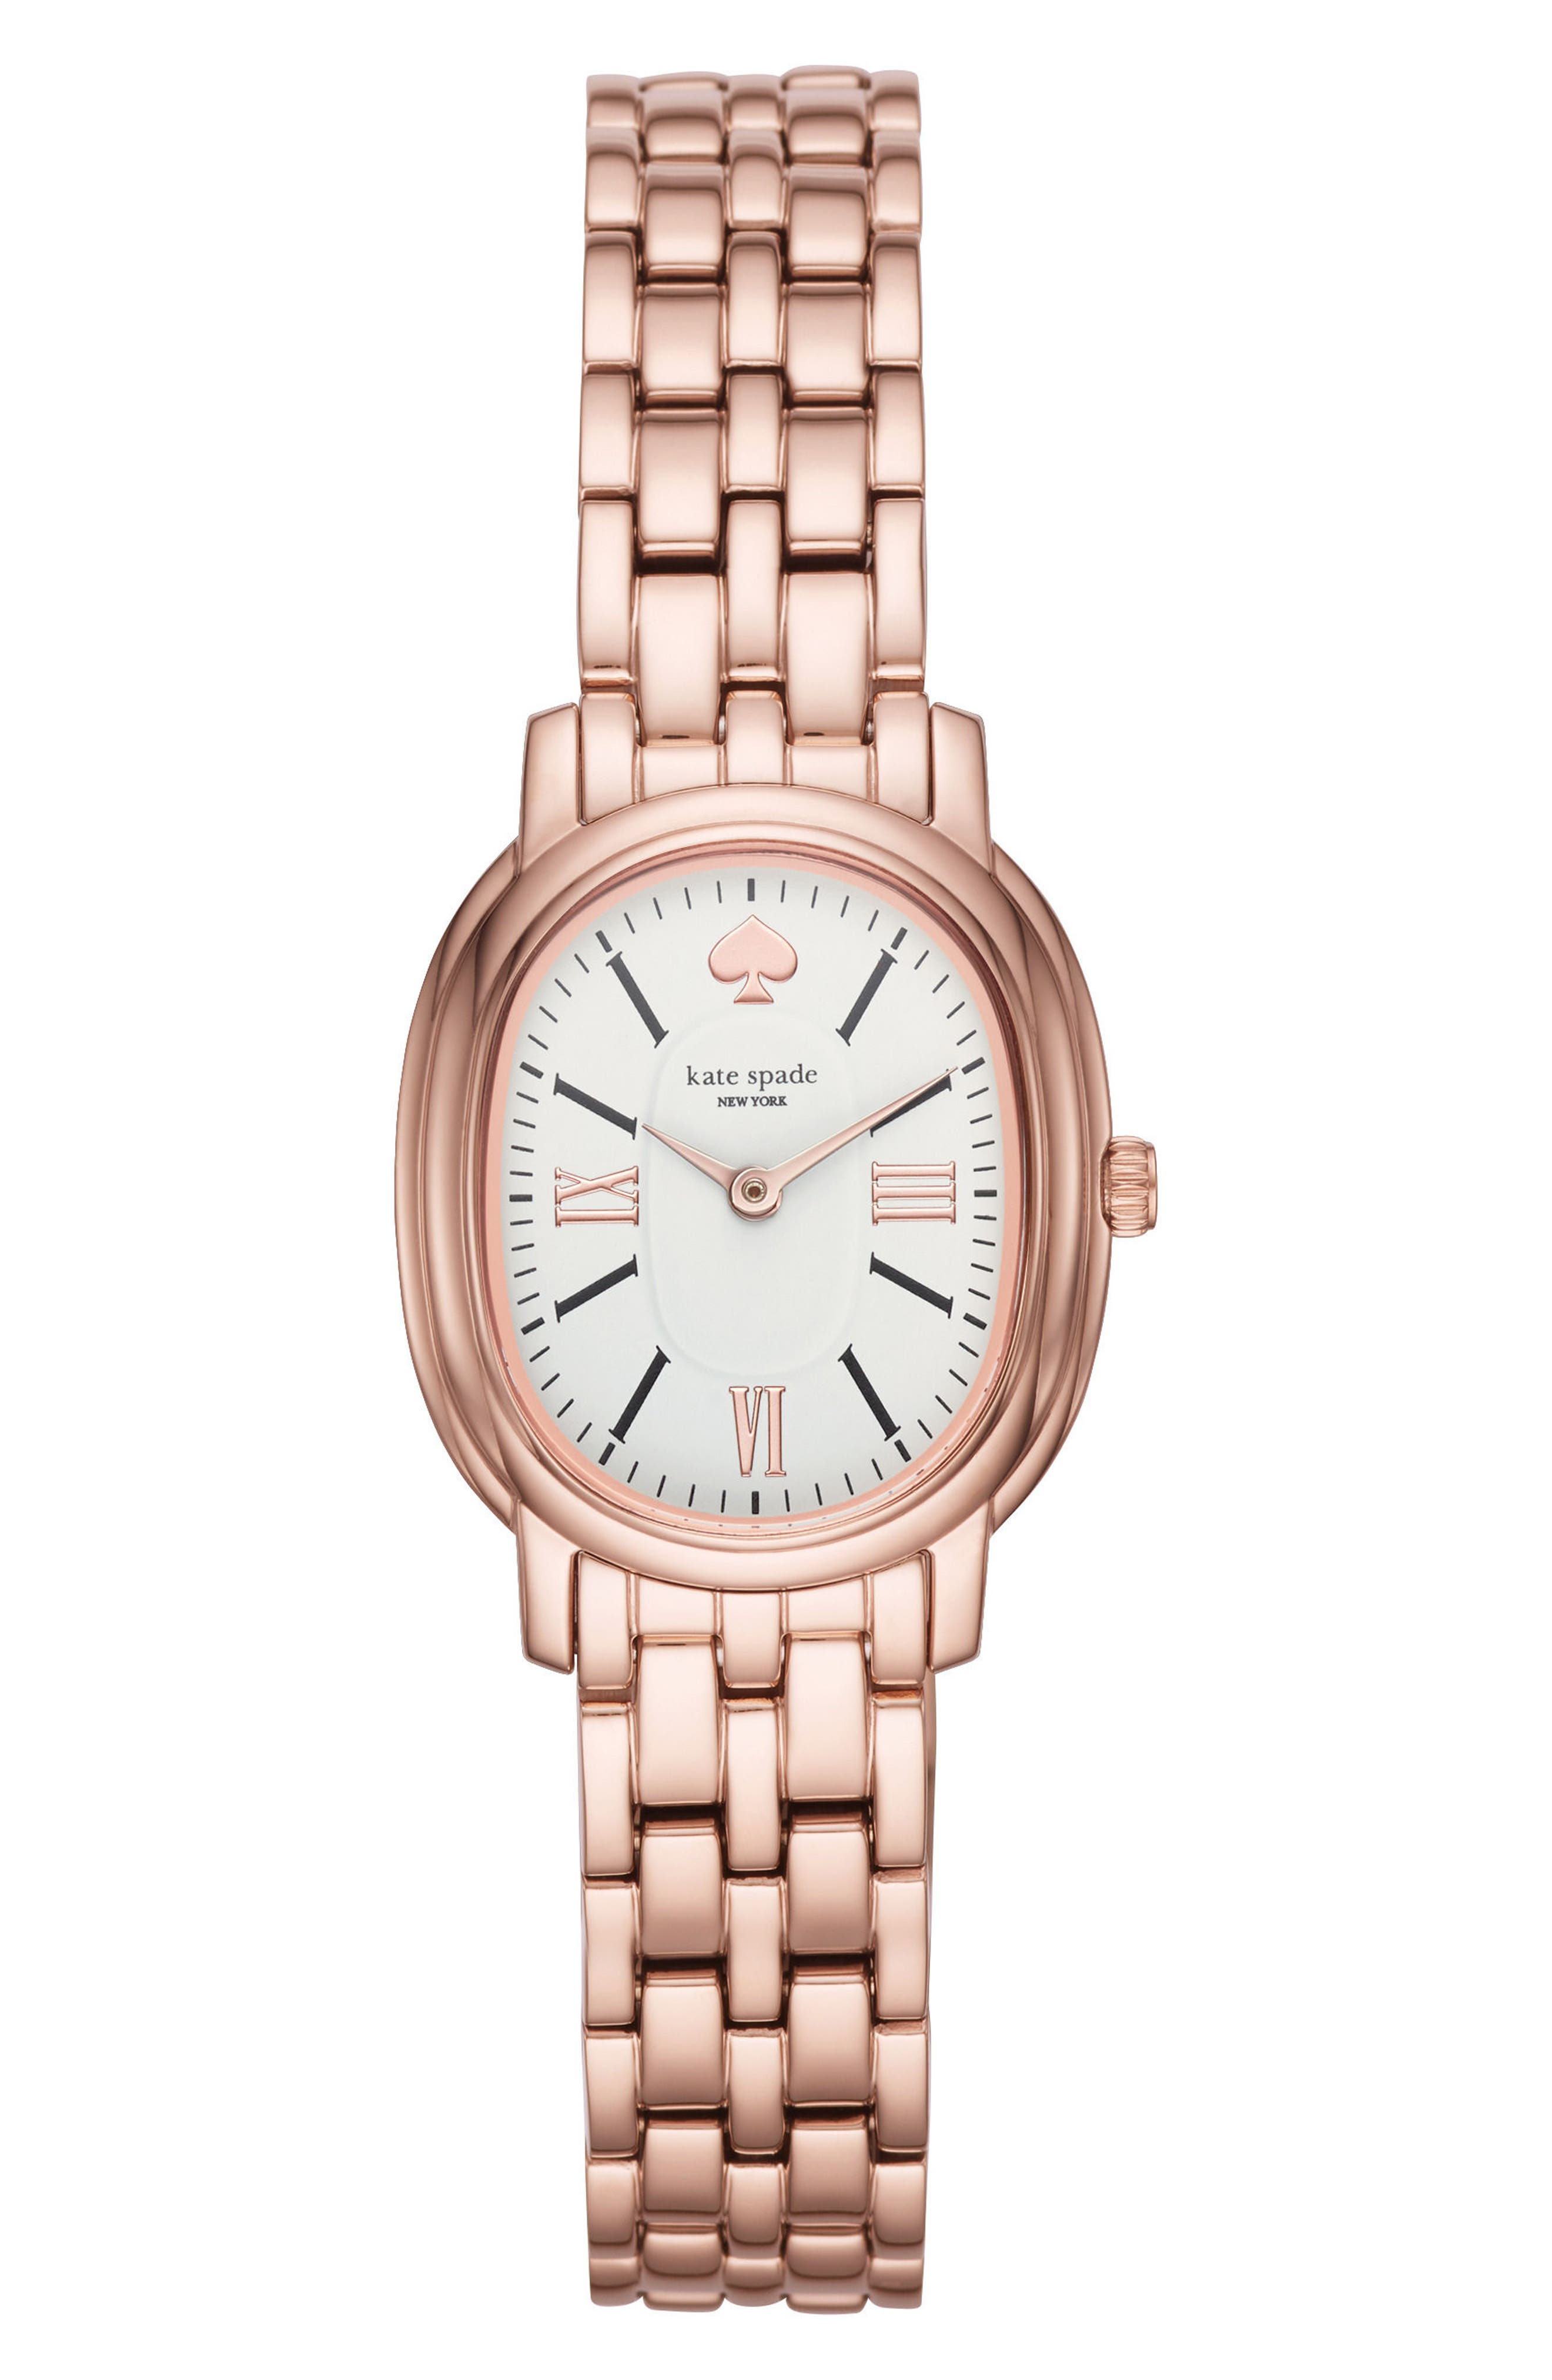 staten bracelet watch, 25mm x 33mm,                         Main,                         color, Pink/ White/ Pink